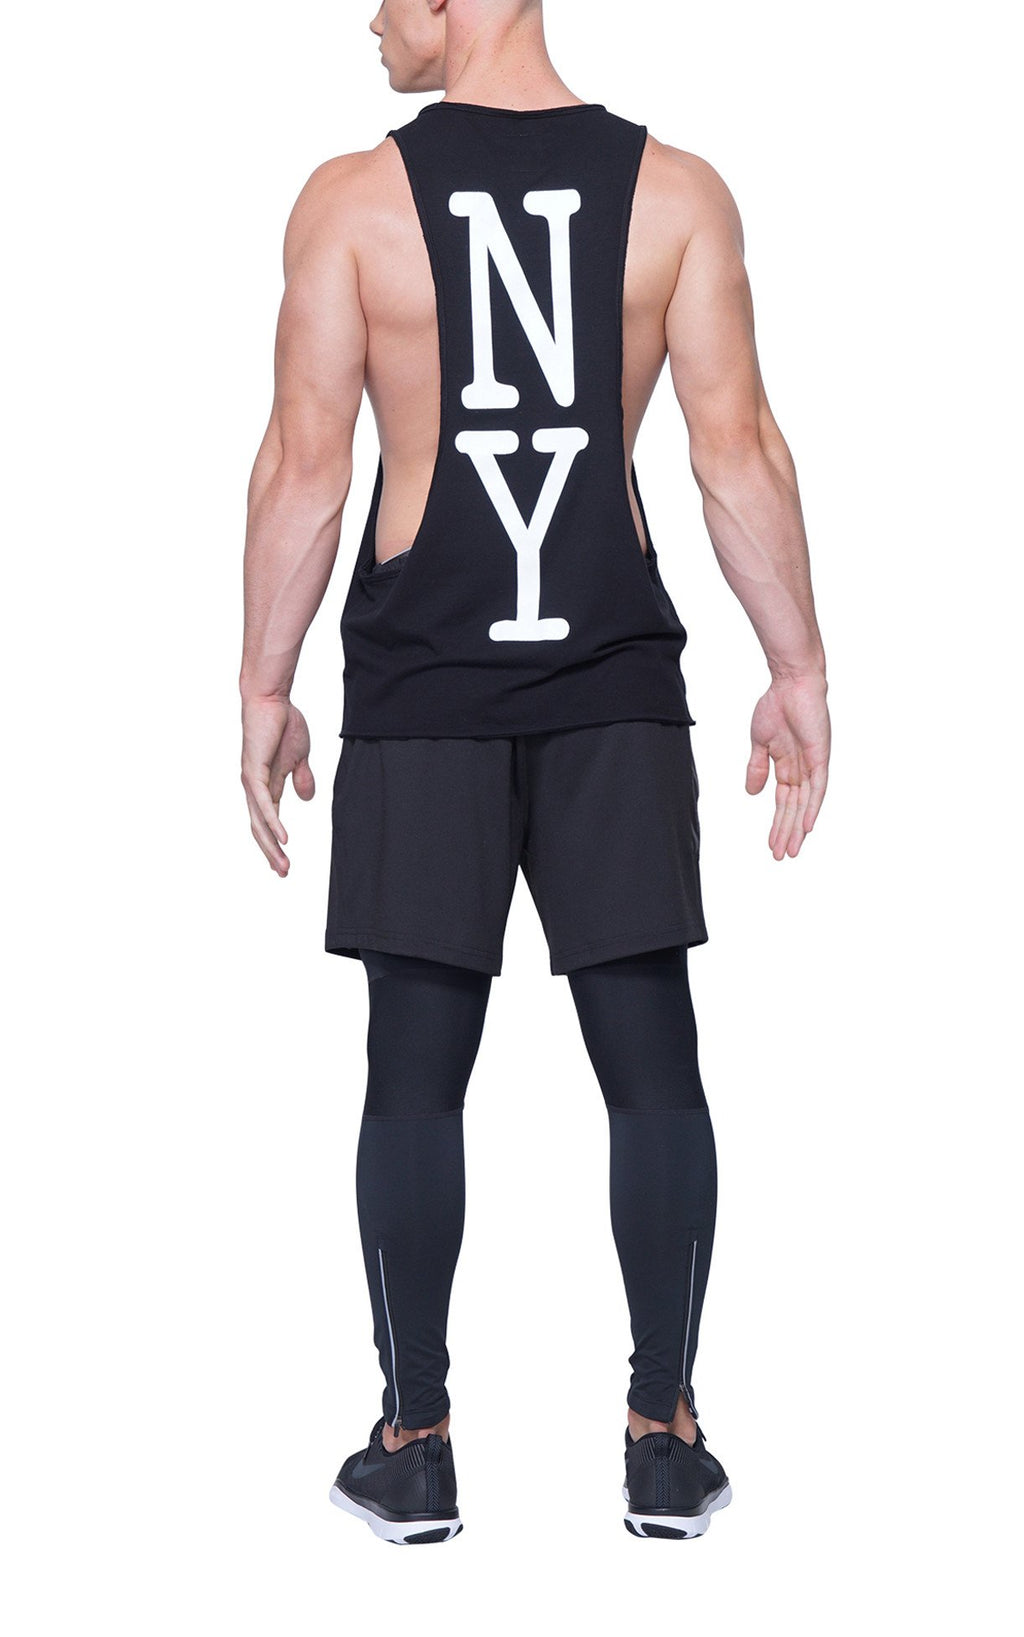 New York Racerback | Black